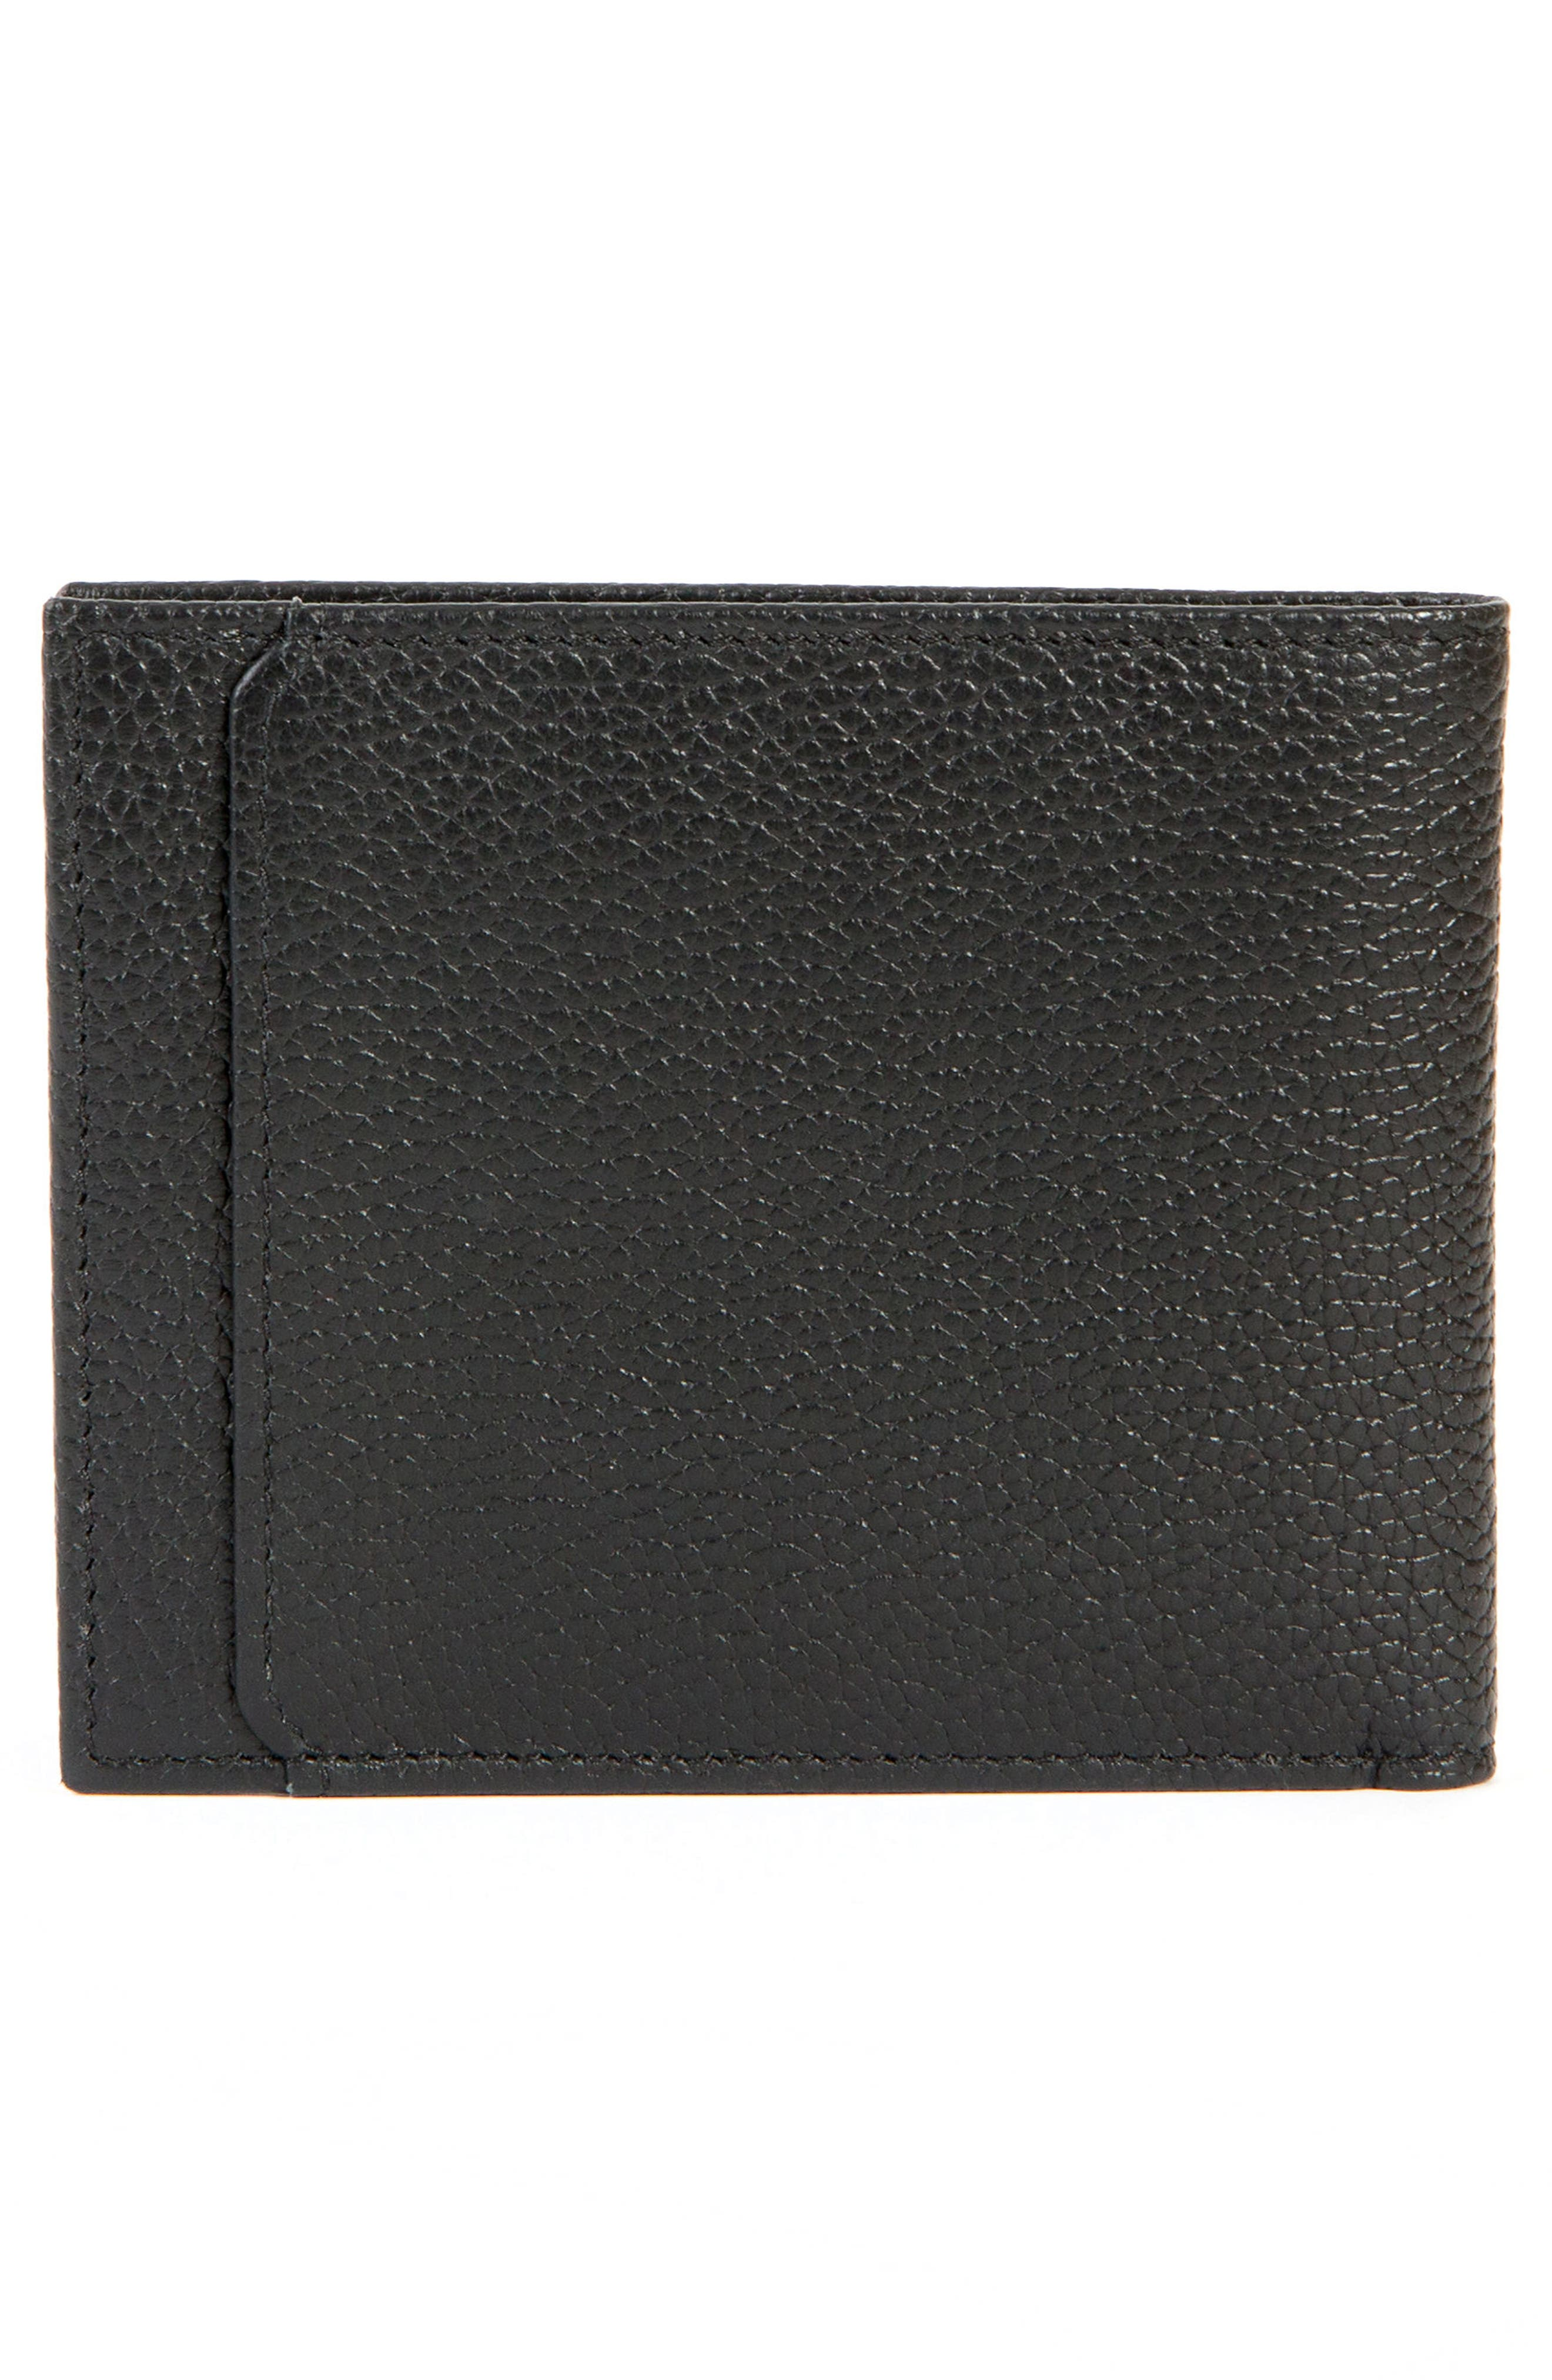 Garth Leather Bifold Wallet,                             Alternate thumbnail 3, color,                             001